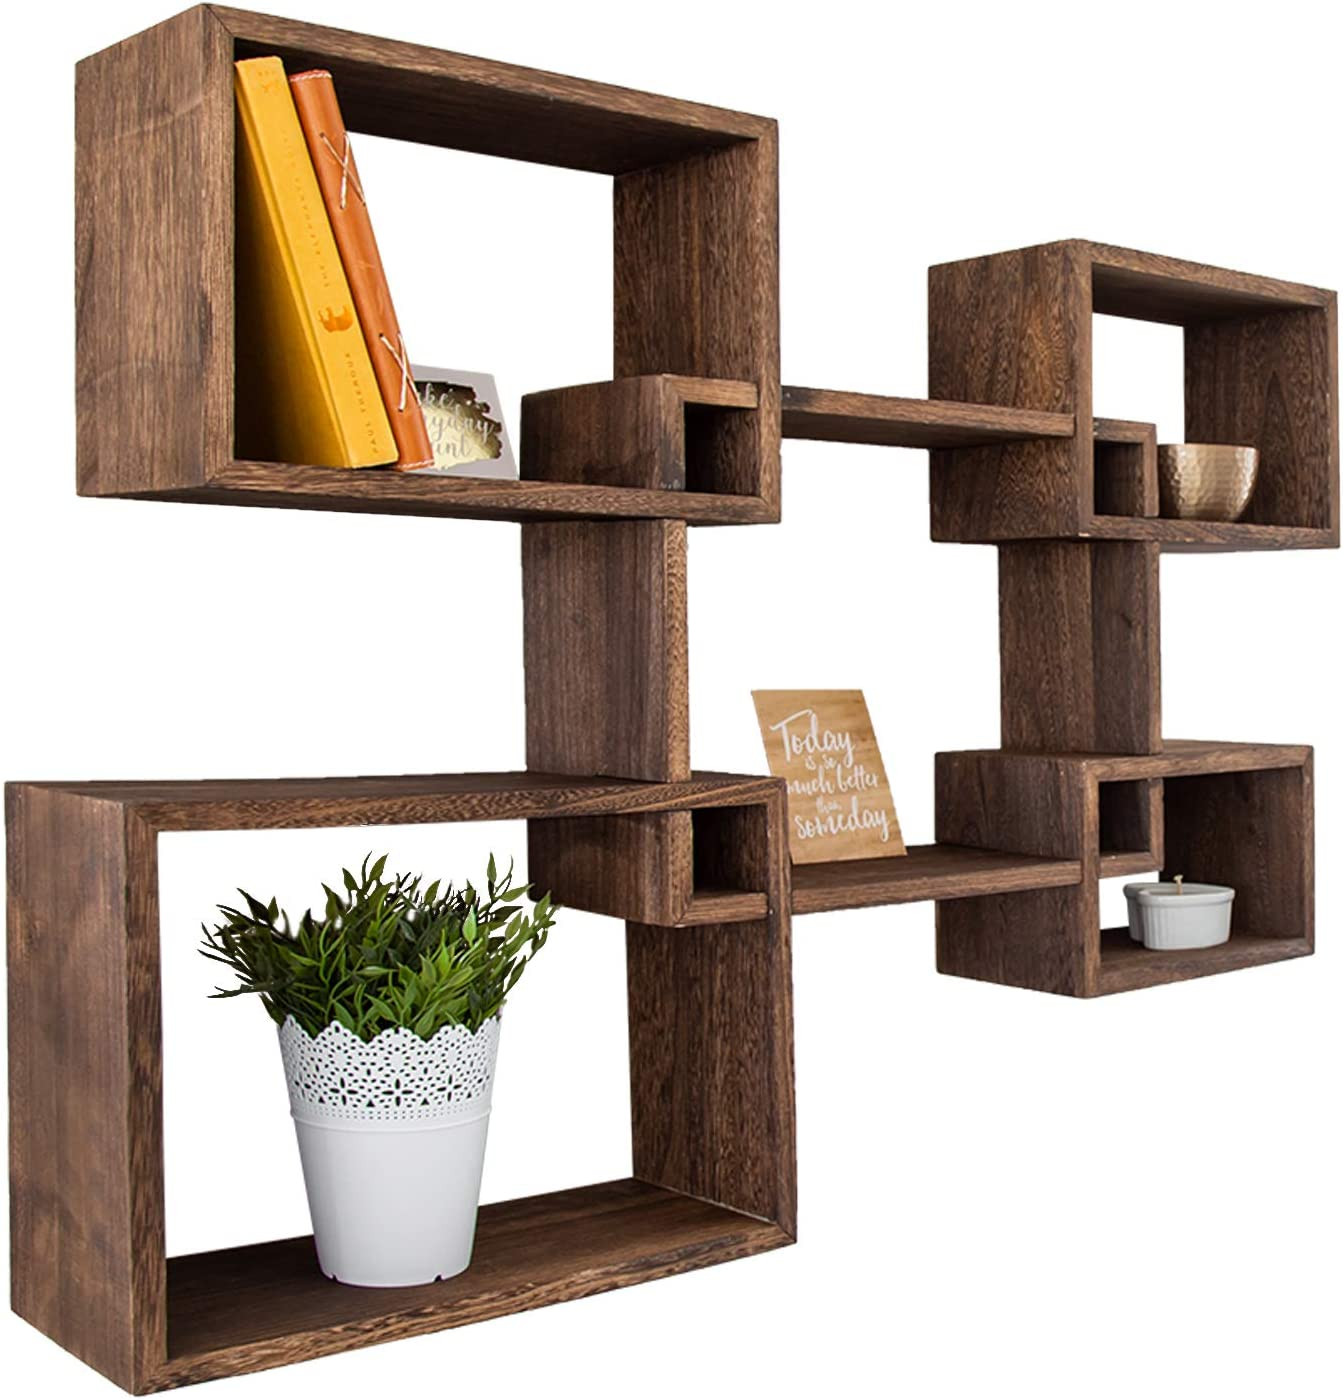 Rustic Wall Mounted Square Shaped Floating Shelves – Set of 5 Square Shelves for Bathroom, Bedroom, Living Room & More - Screws and Anchors Included – Wall Décor Display for Home - Torched Brown